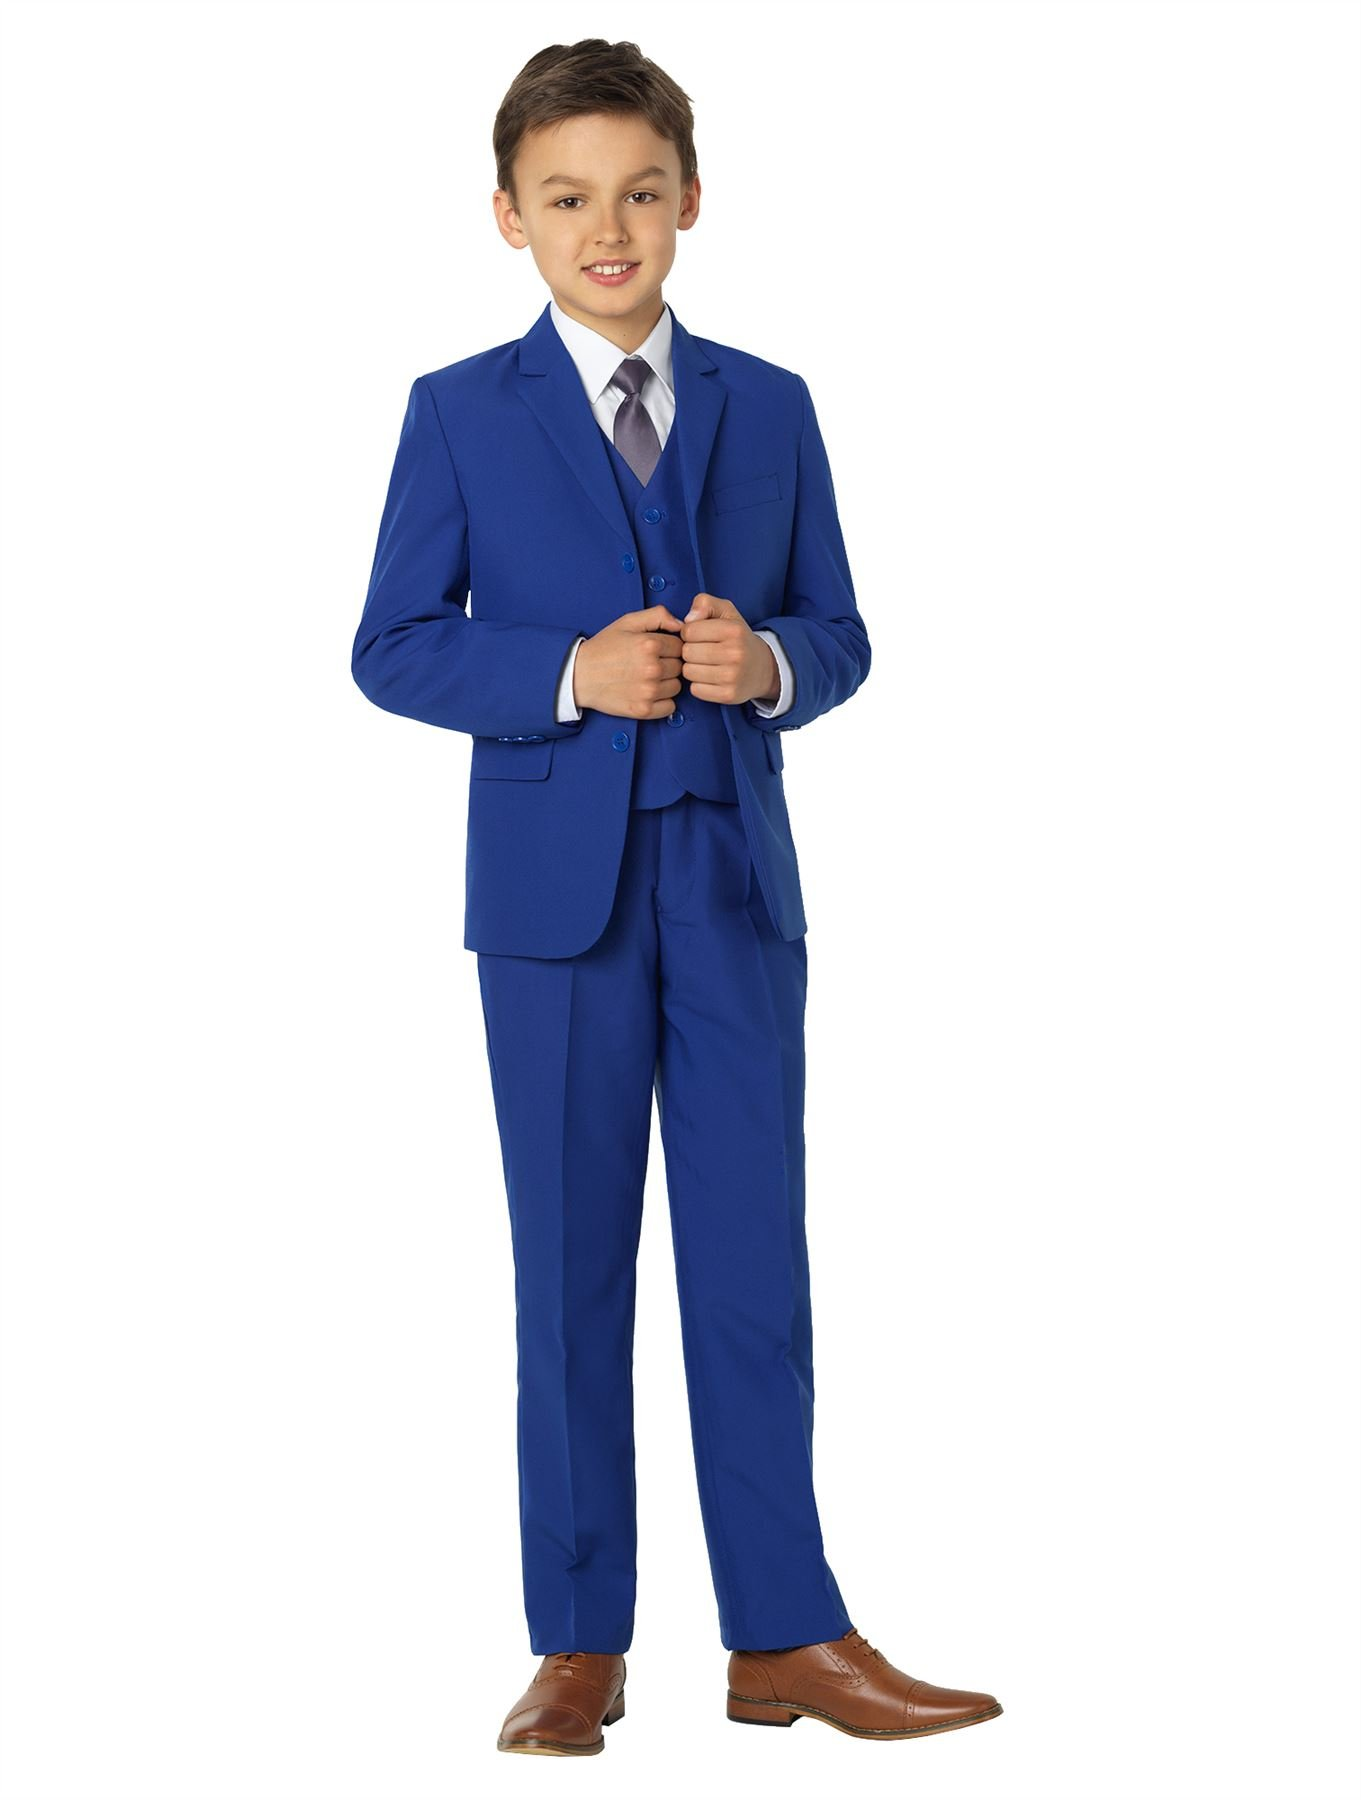 Shiny Penny Boys Blue Formal 5 Piece Suit Set with Shirt & Vest, 10